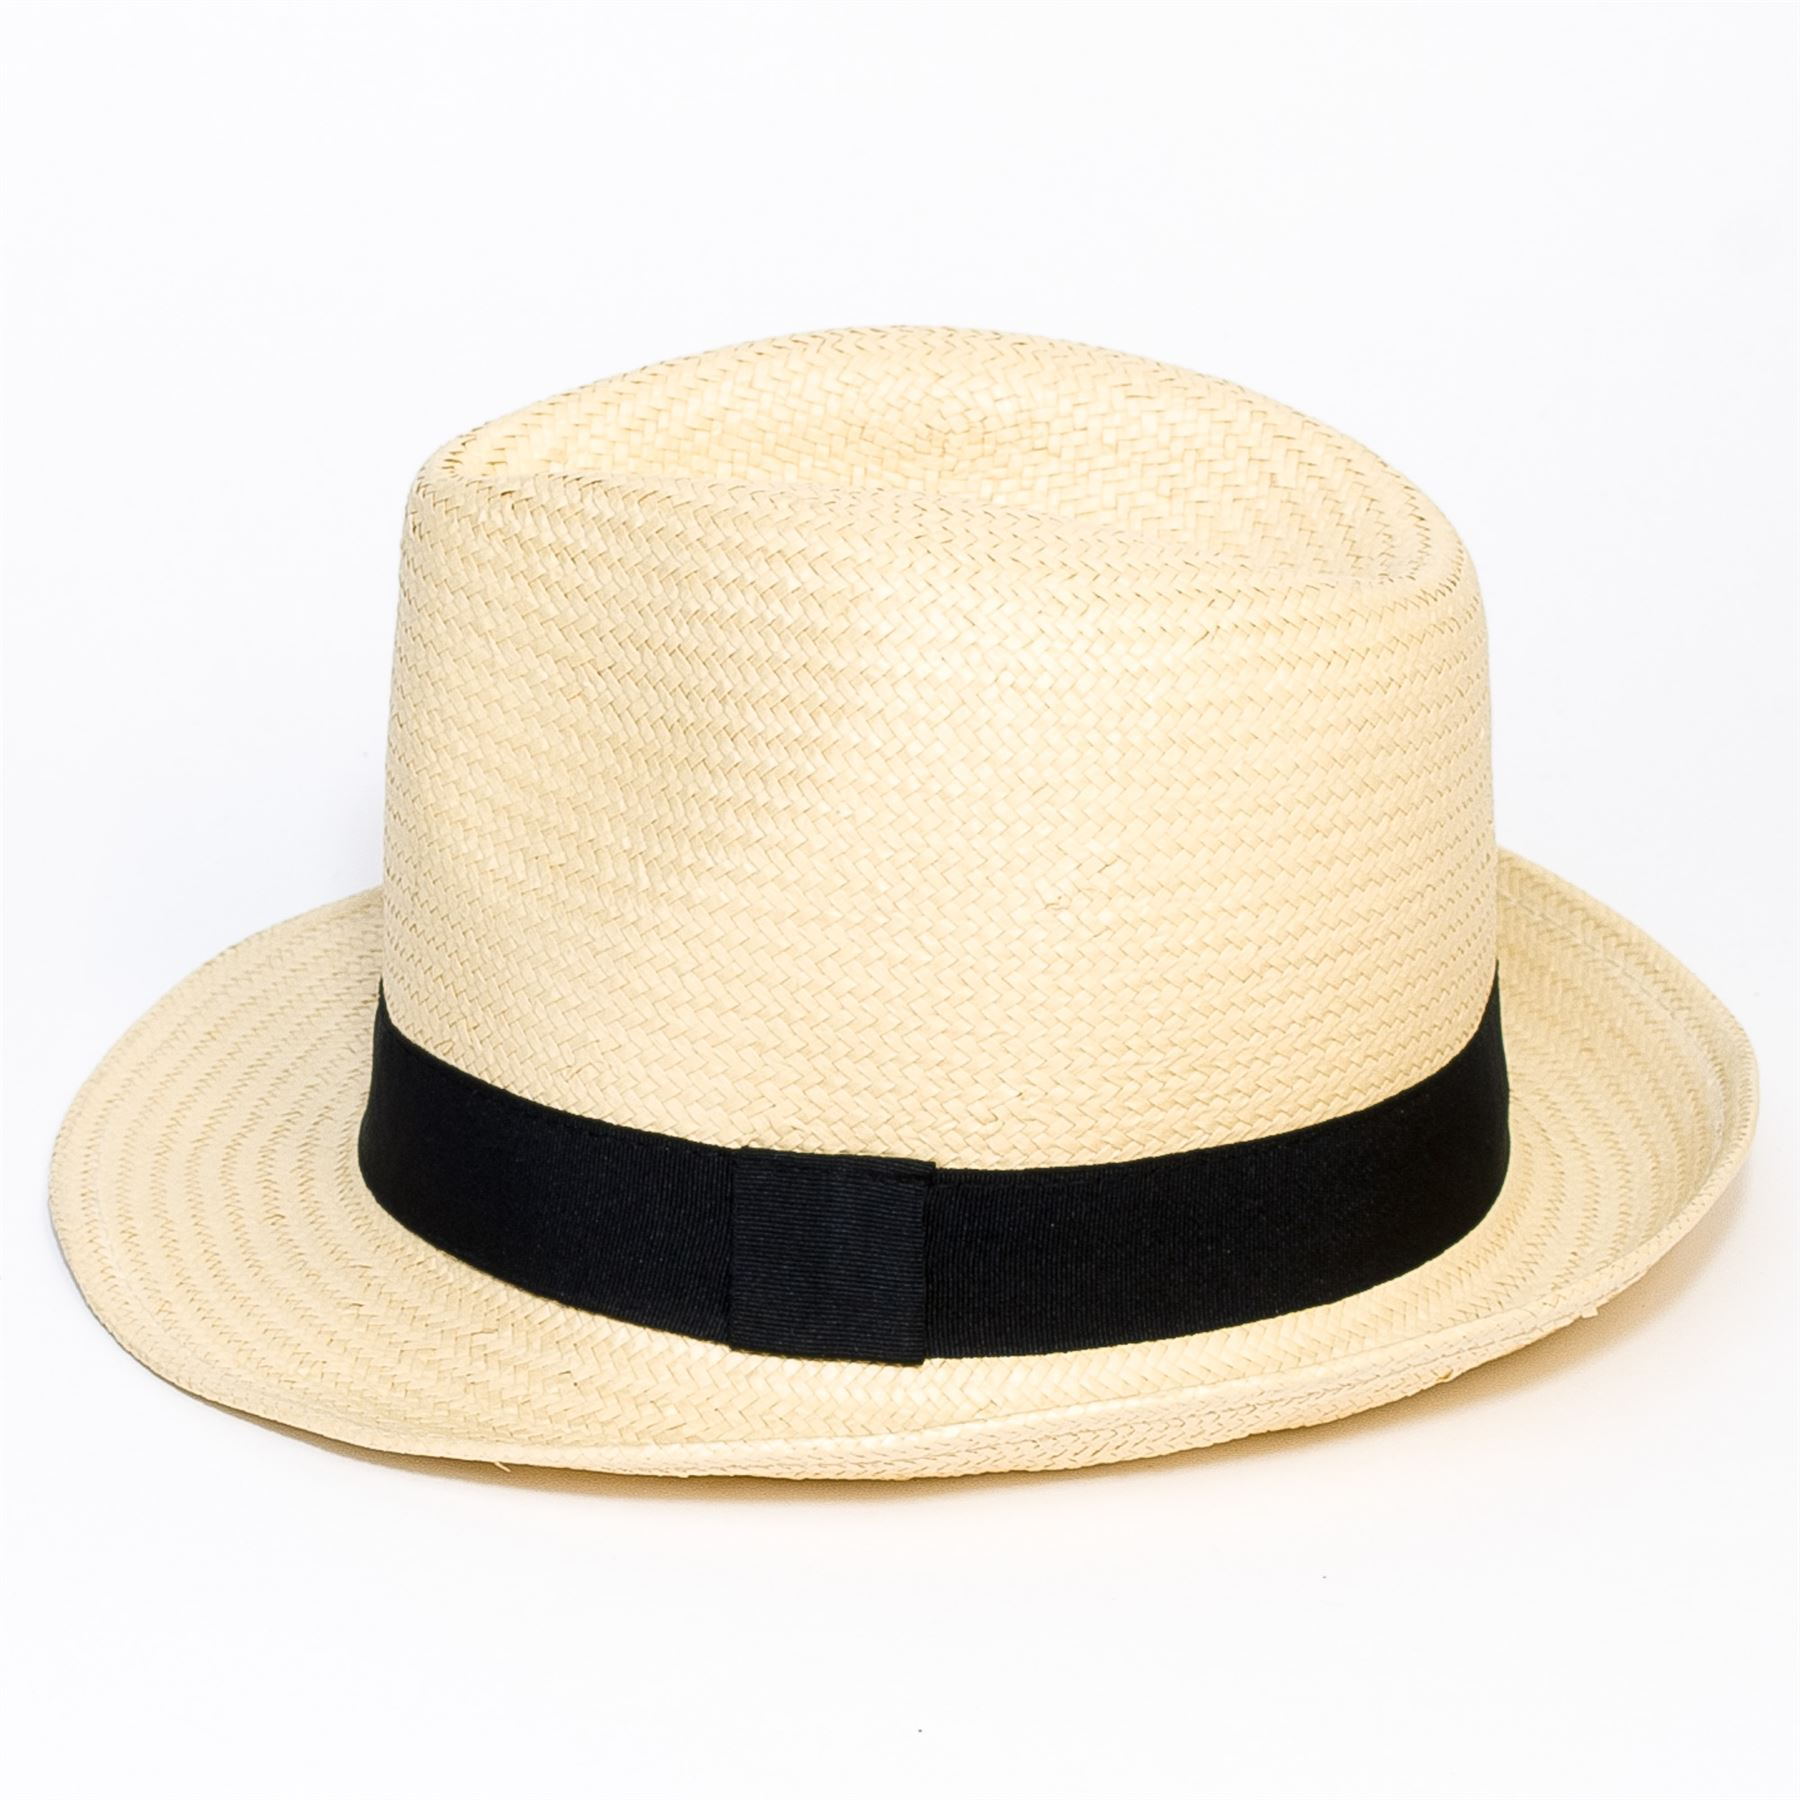 Woven-Straw-Style-Beige-Trilby-Hat thumbnail 6